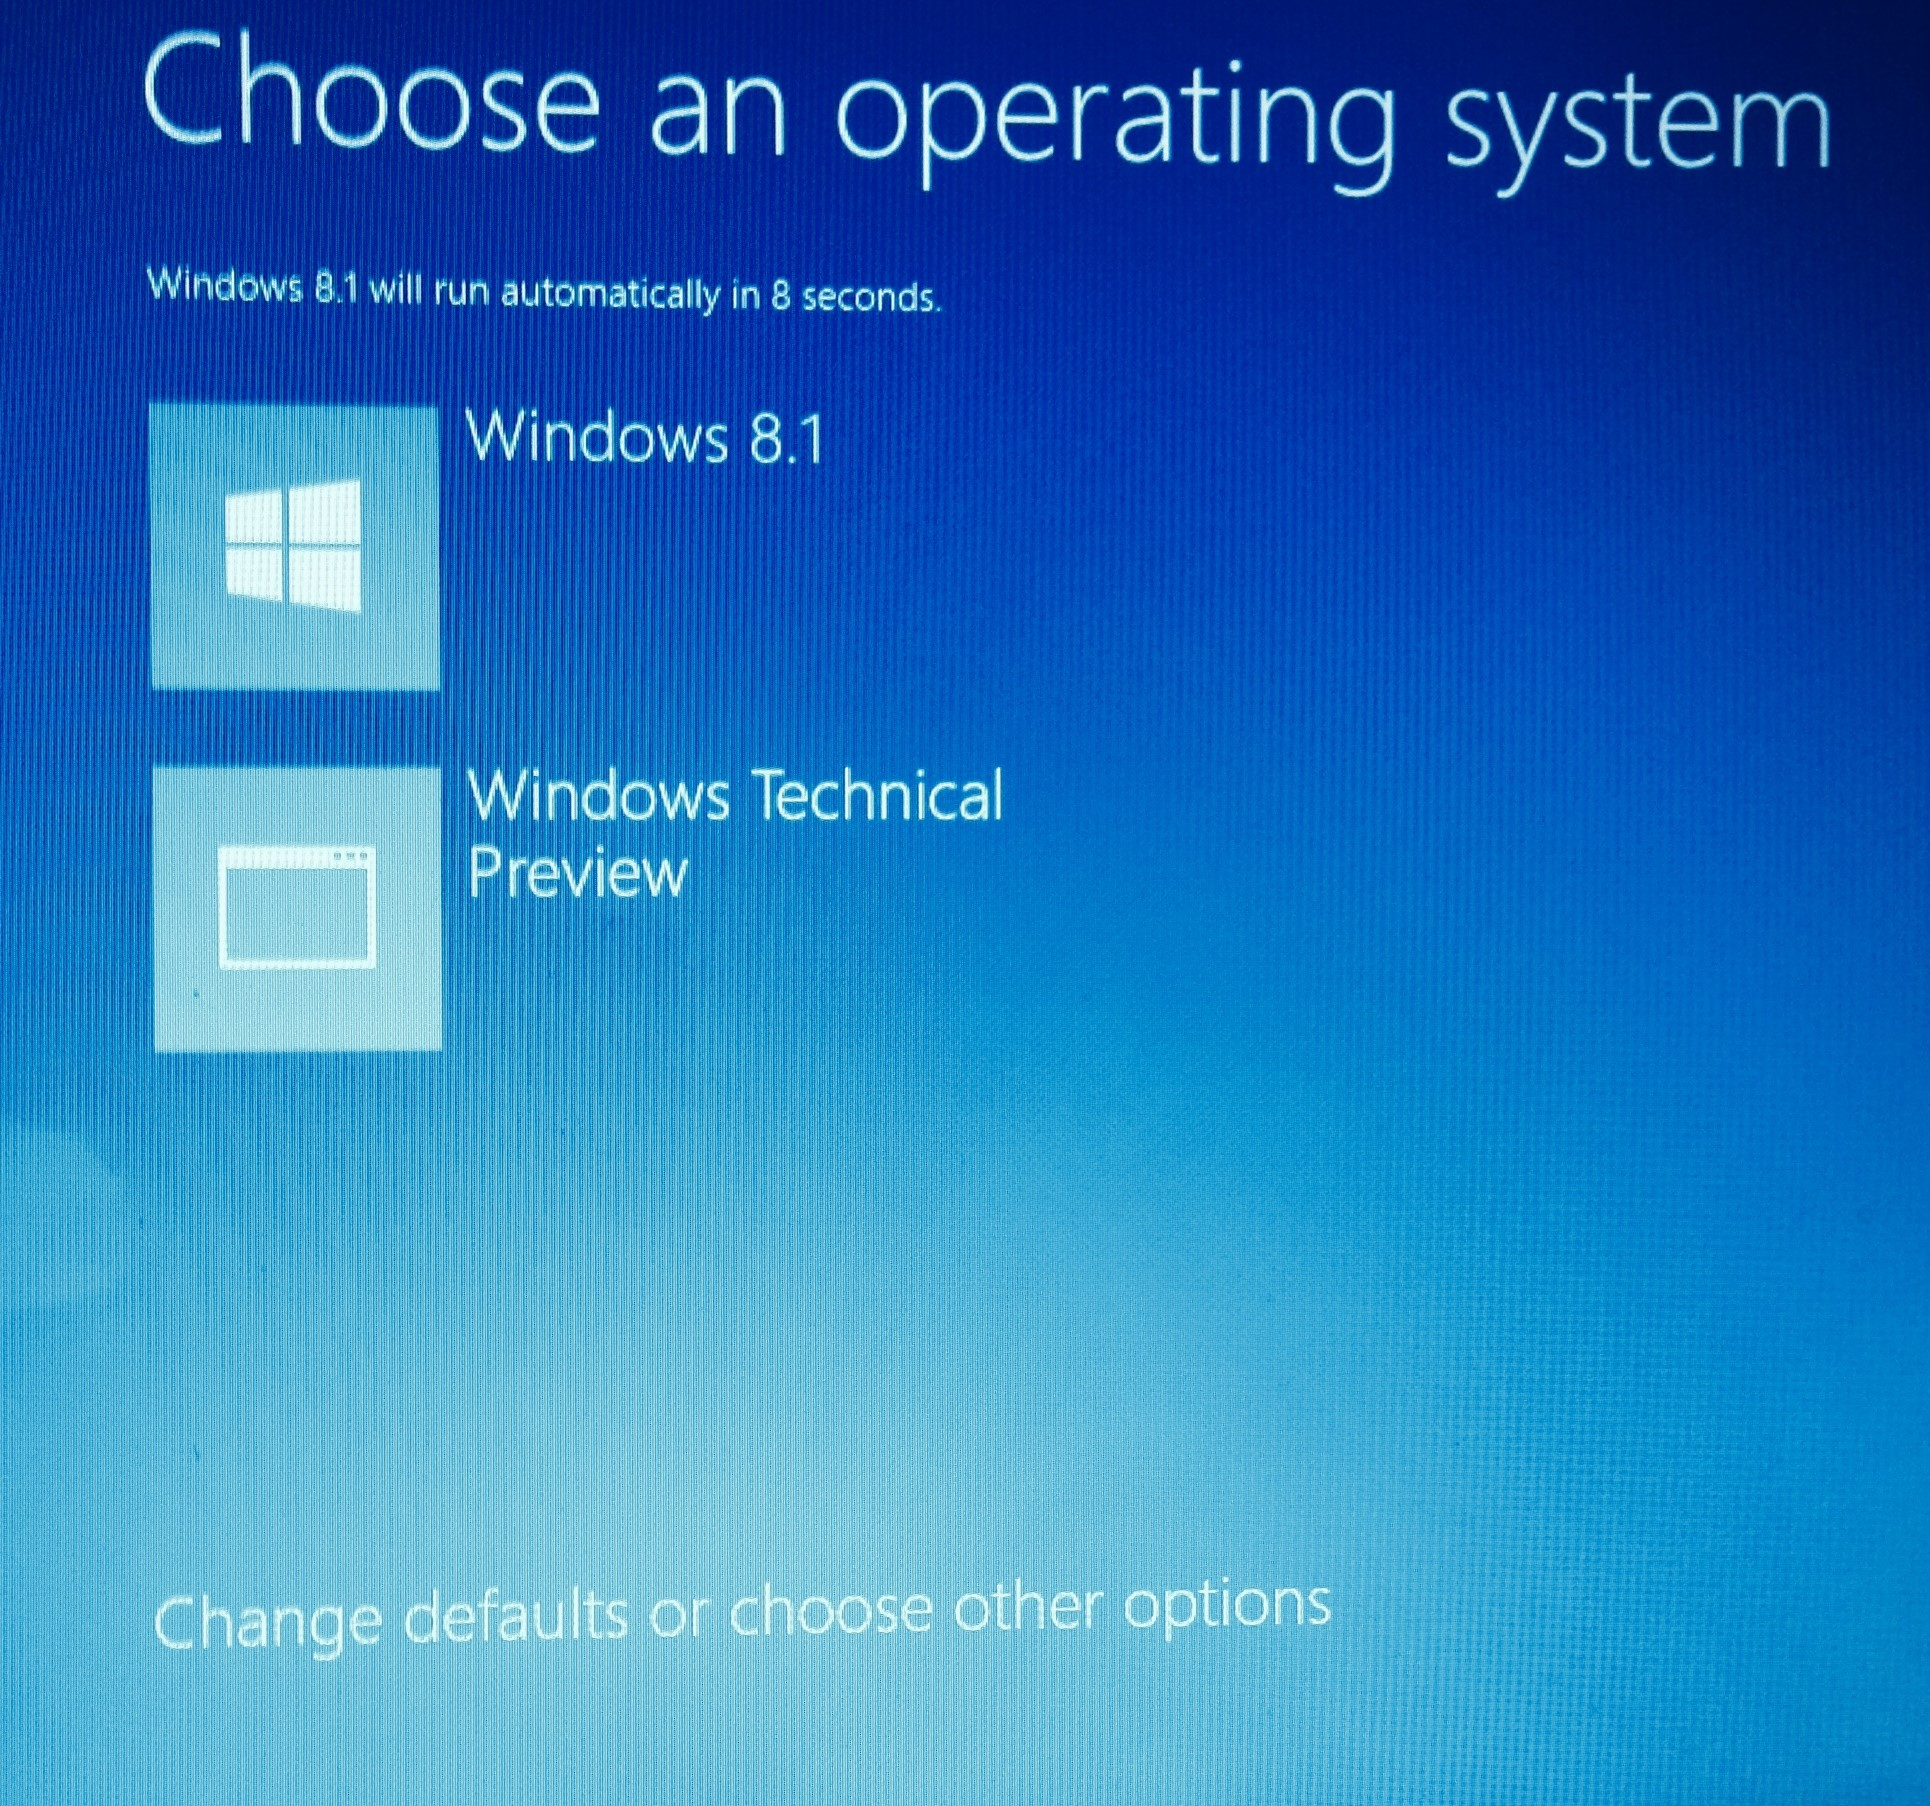 Windows 8.1 and 10 Dual Boot